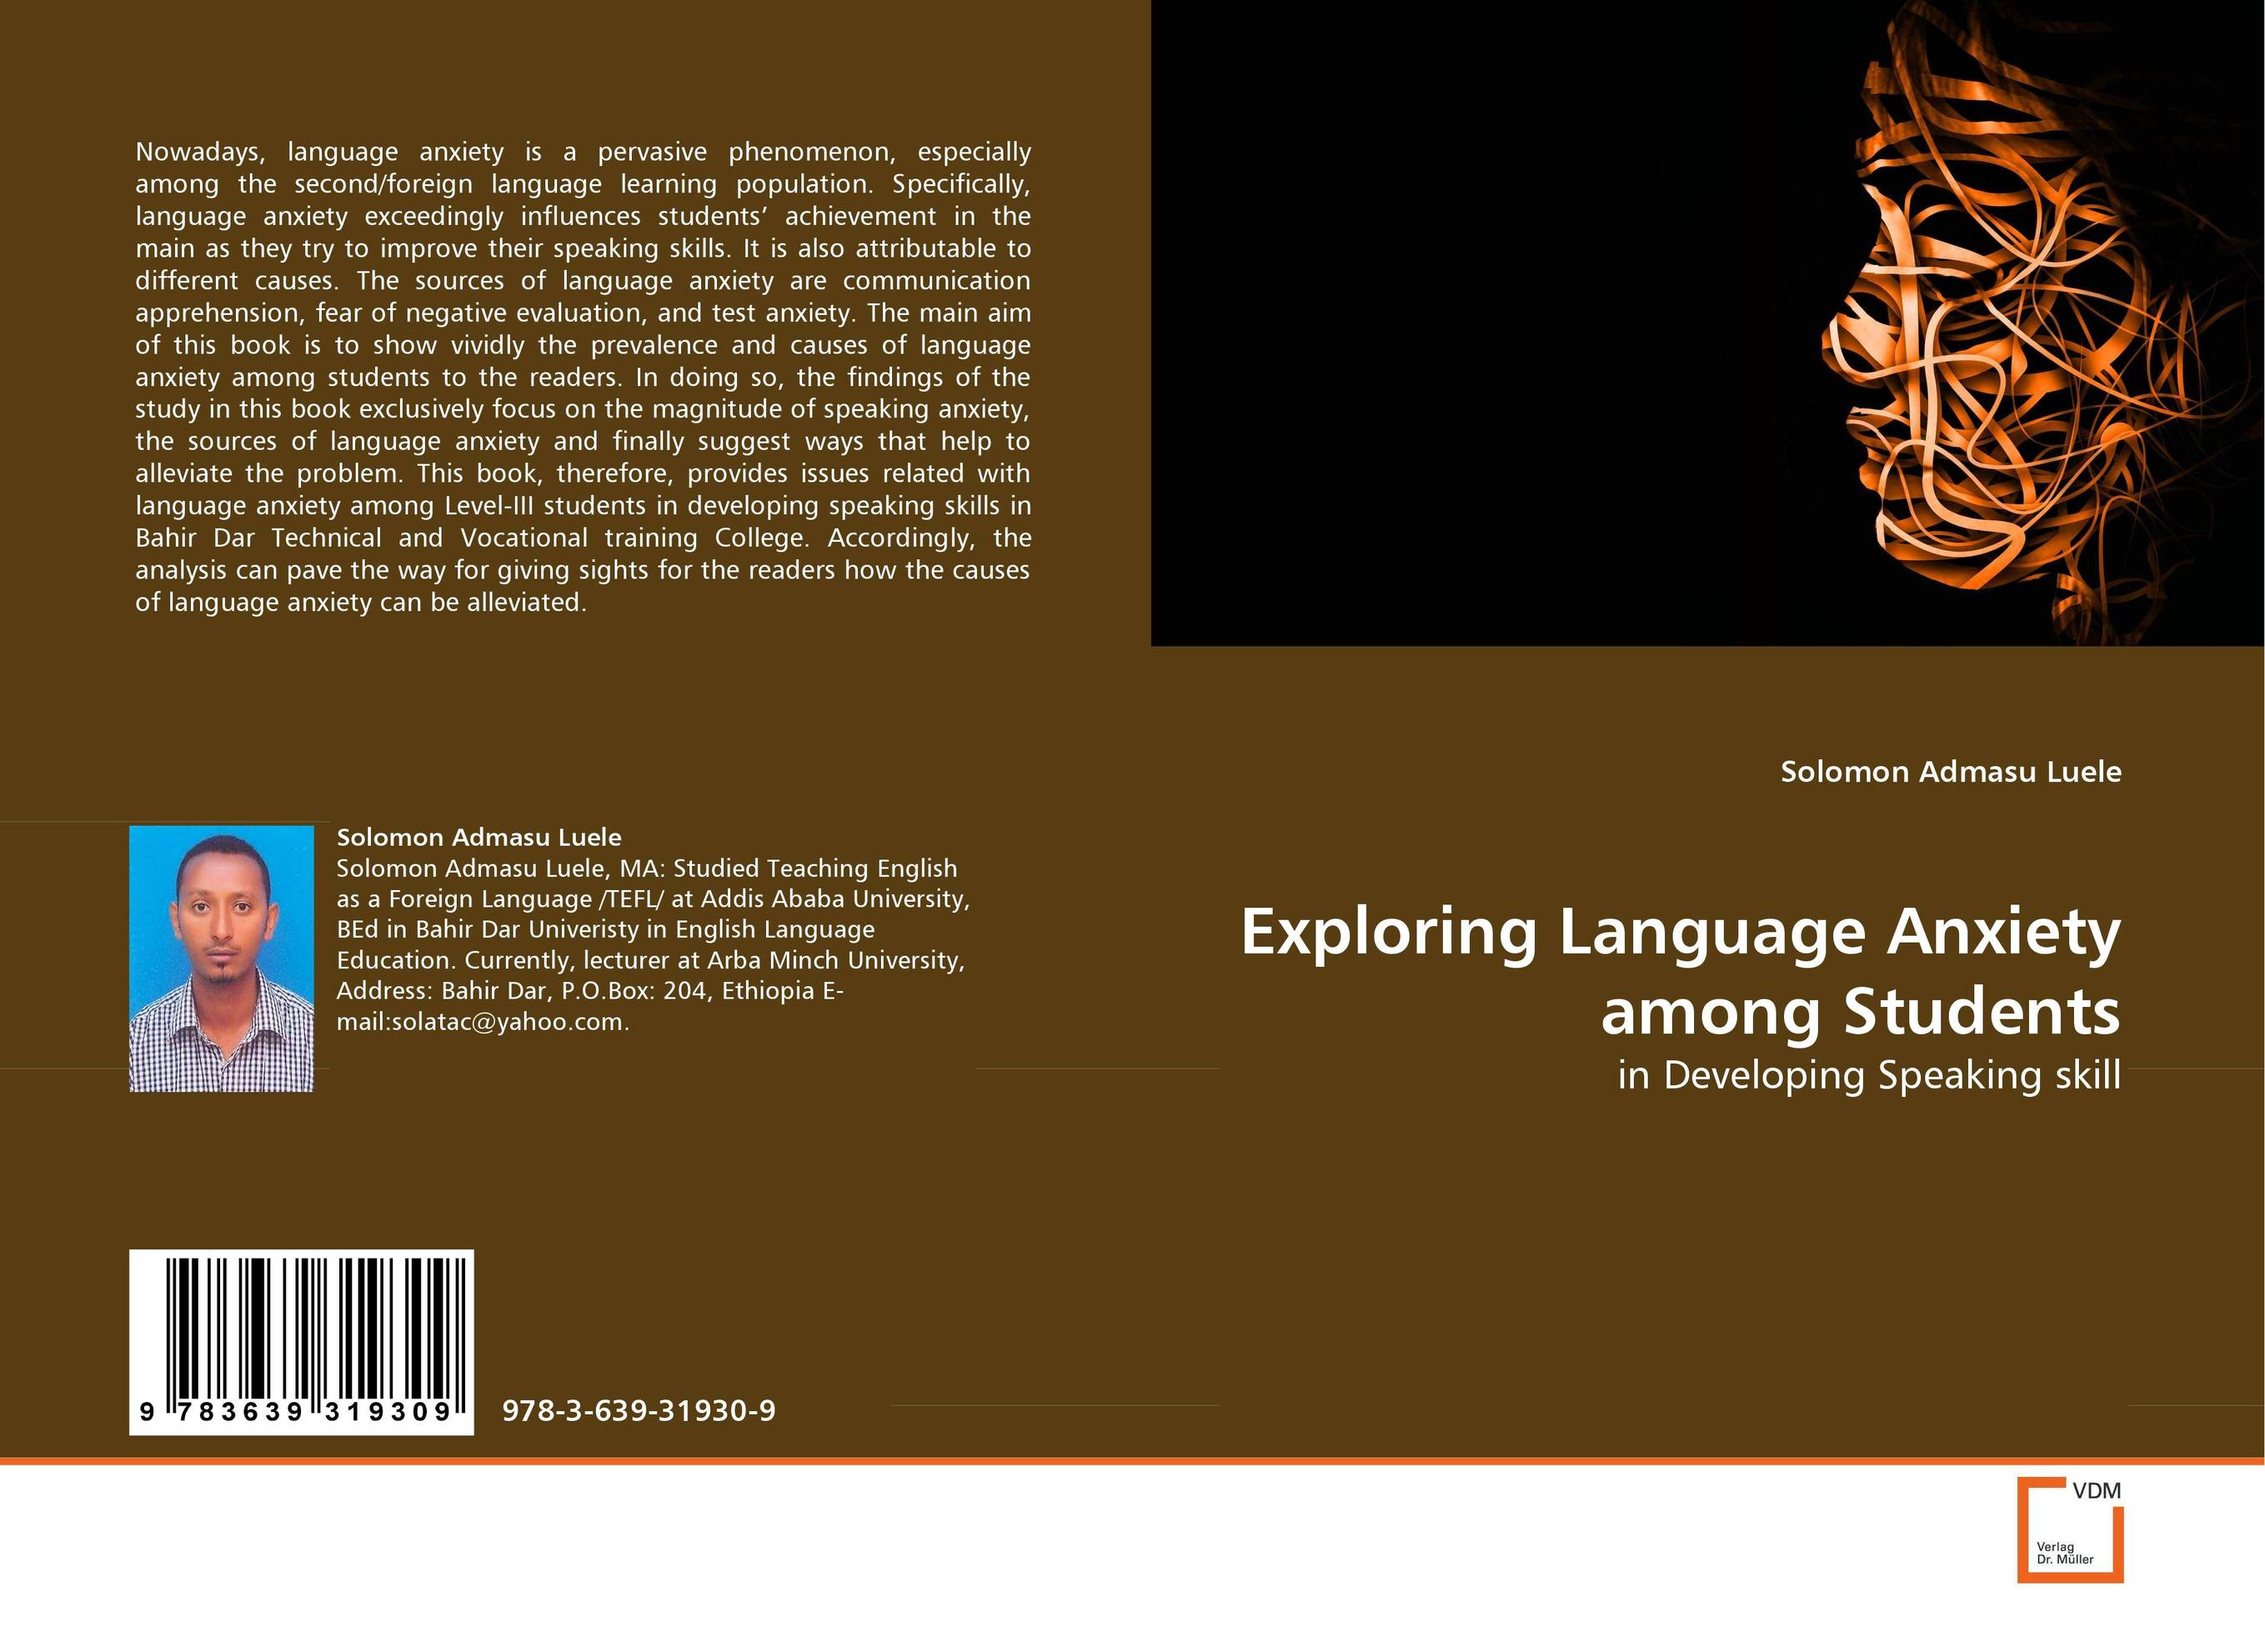 Exploring Language Anxiety among Students foreign language speaking anxiety in asking questions in class